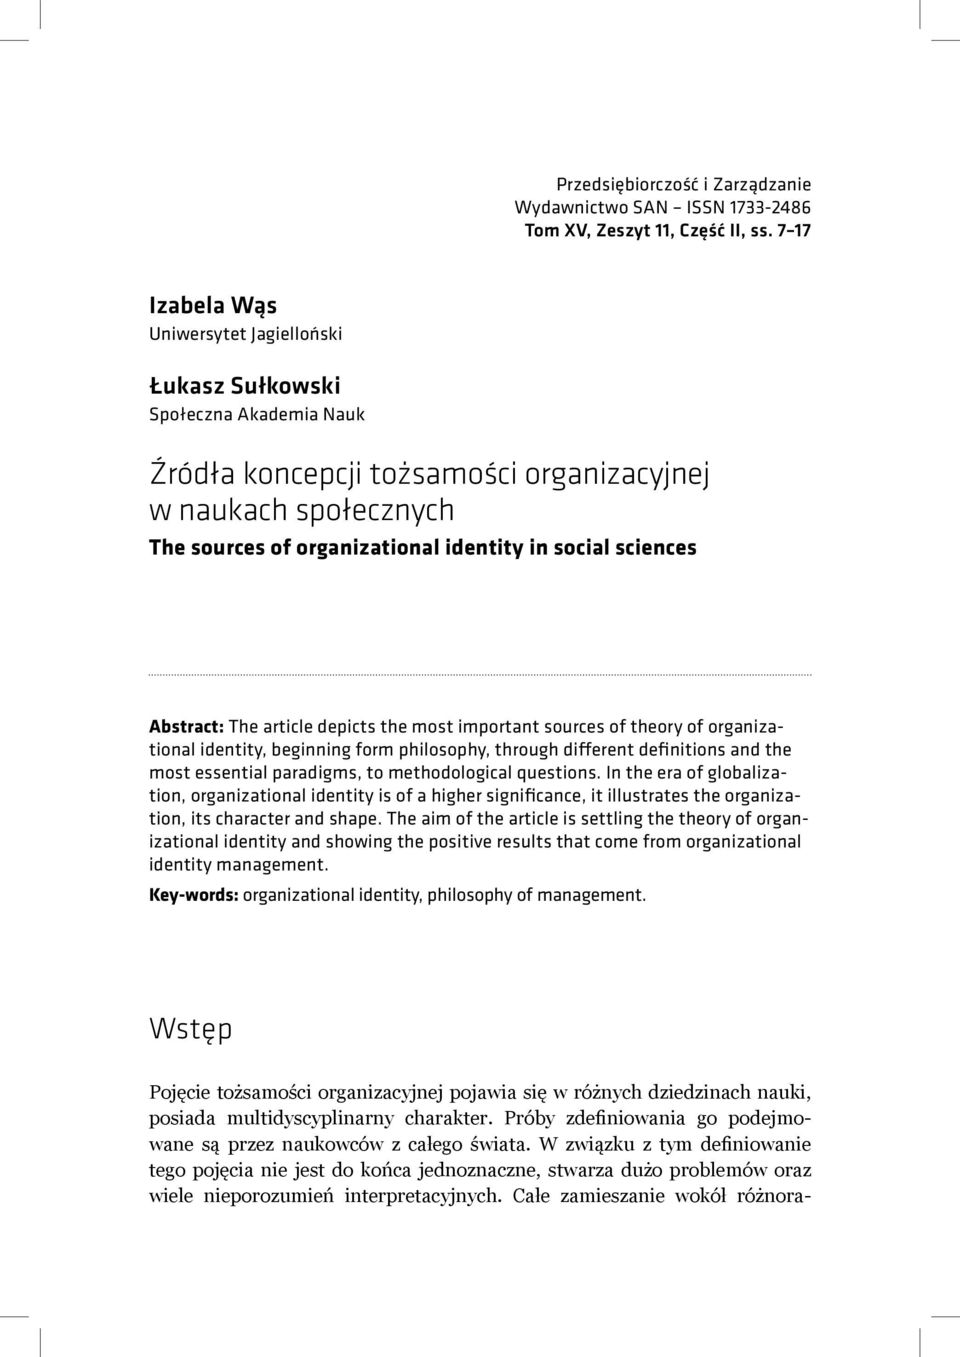 sciences Abstract: The article depicts the most important sources of theory of organizational identity, beginning form philosophy, through different definitions and the most essential paradigms, to